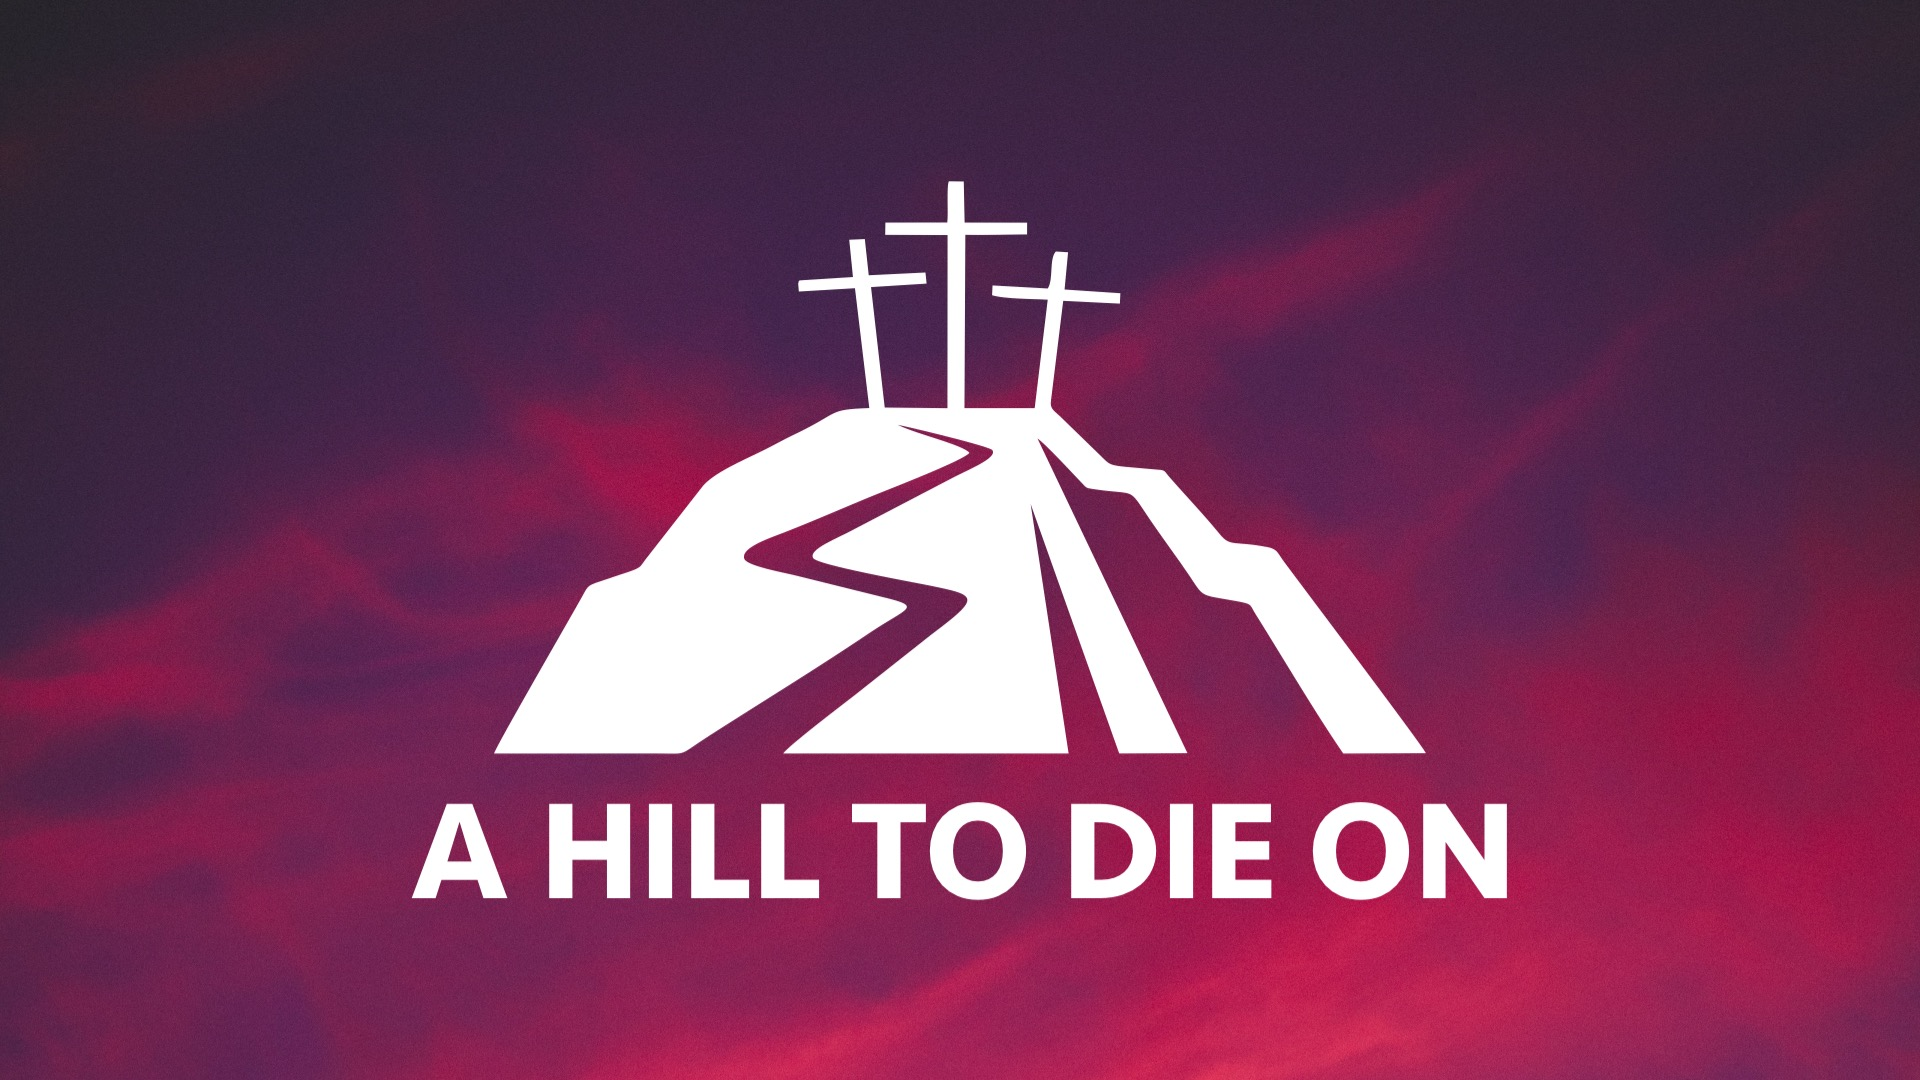 A Hill to Die On Gods Word